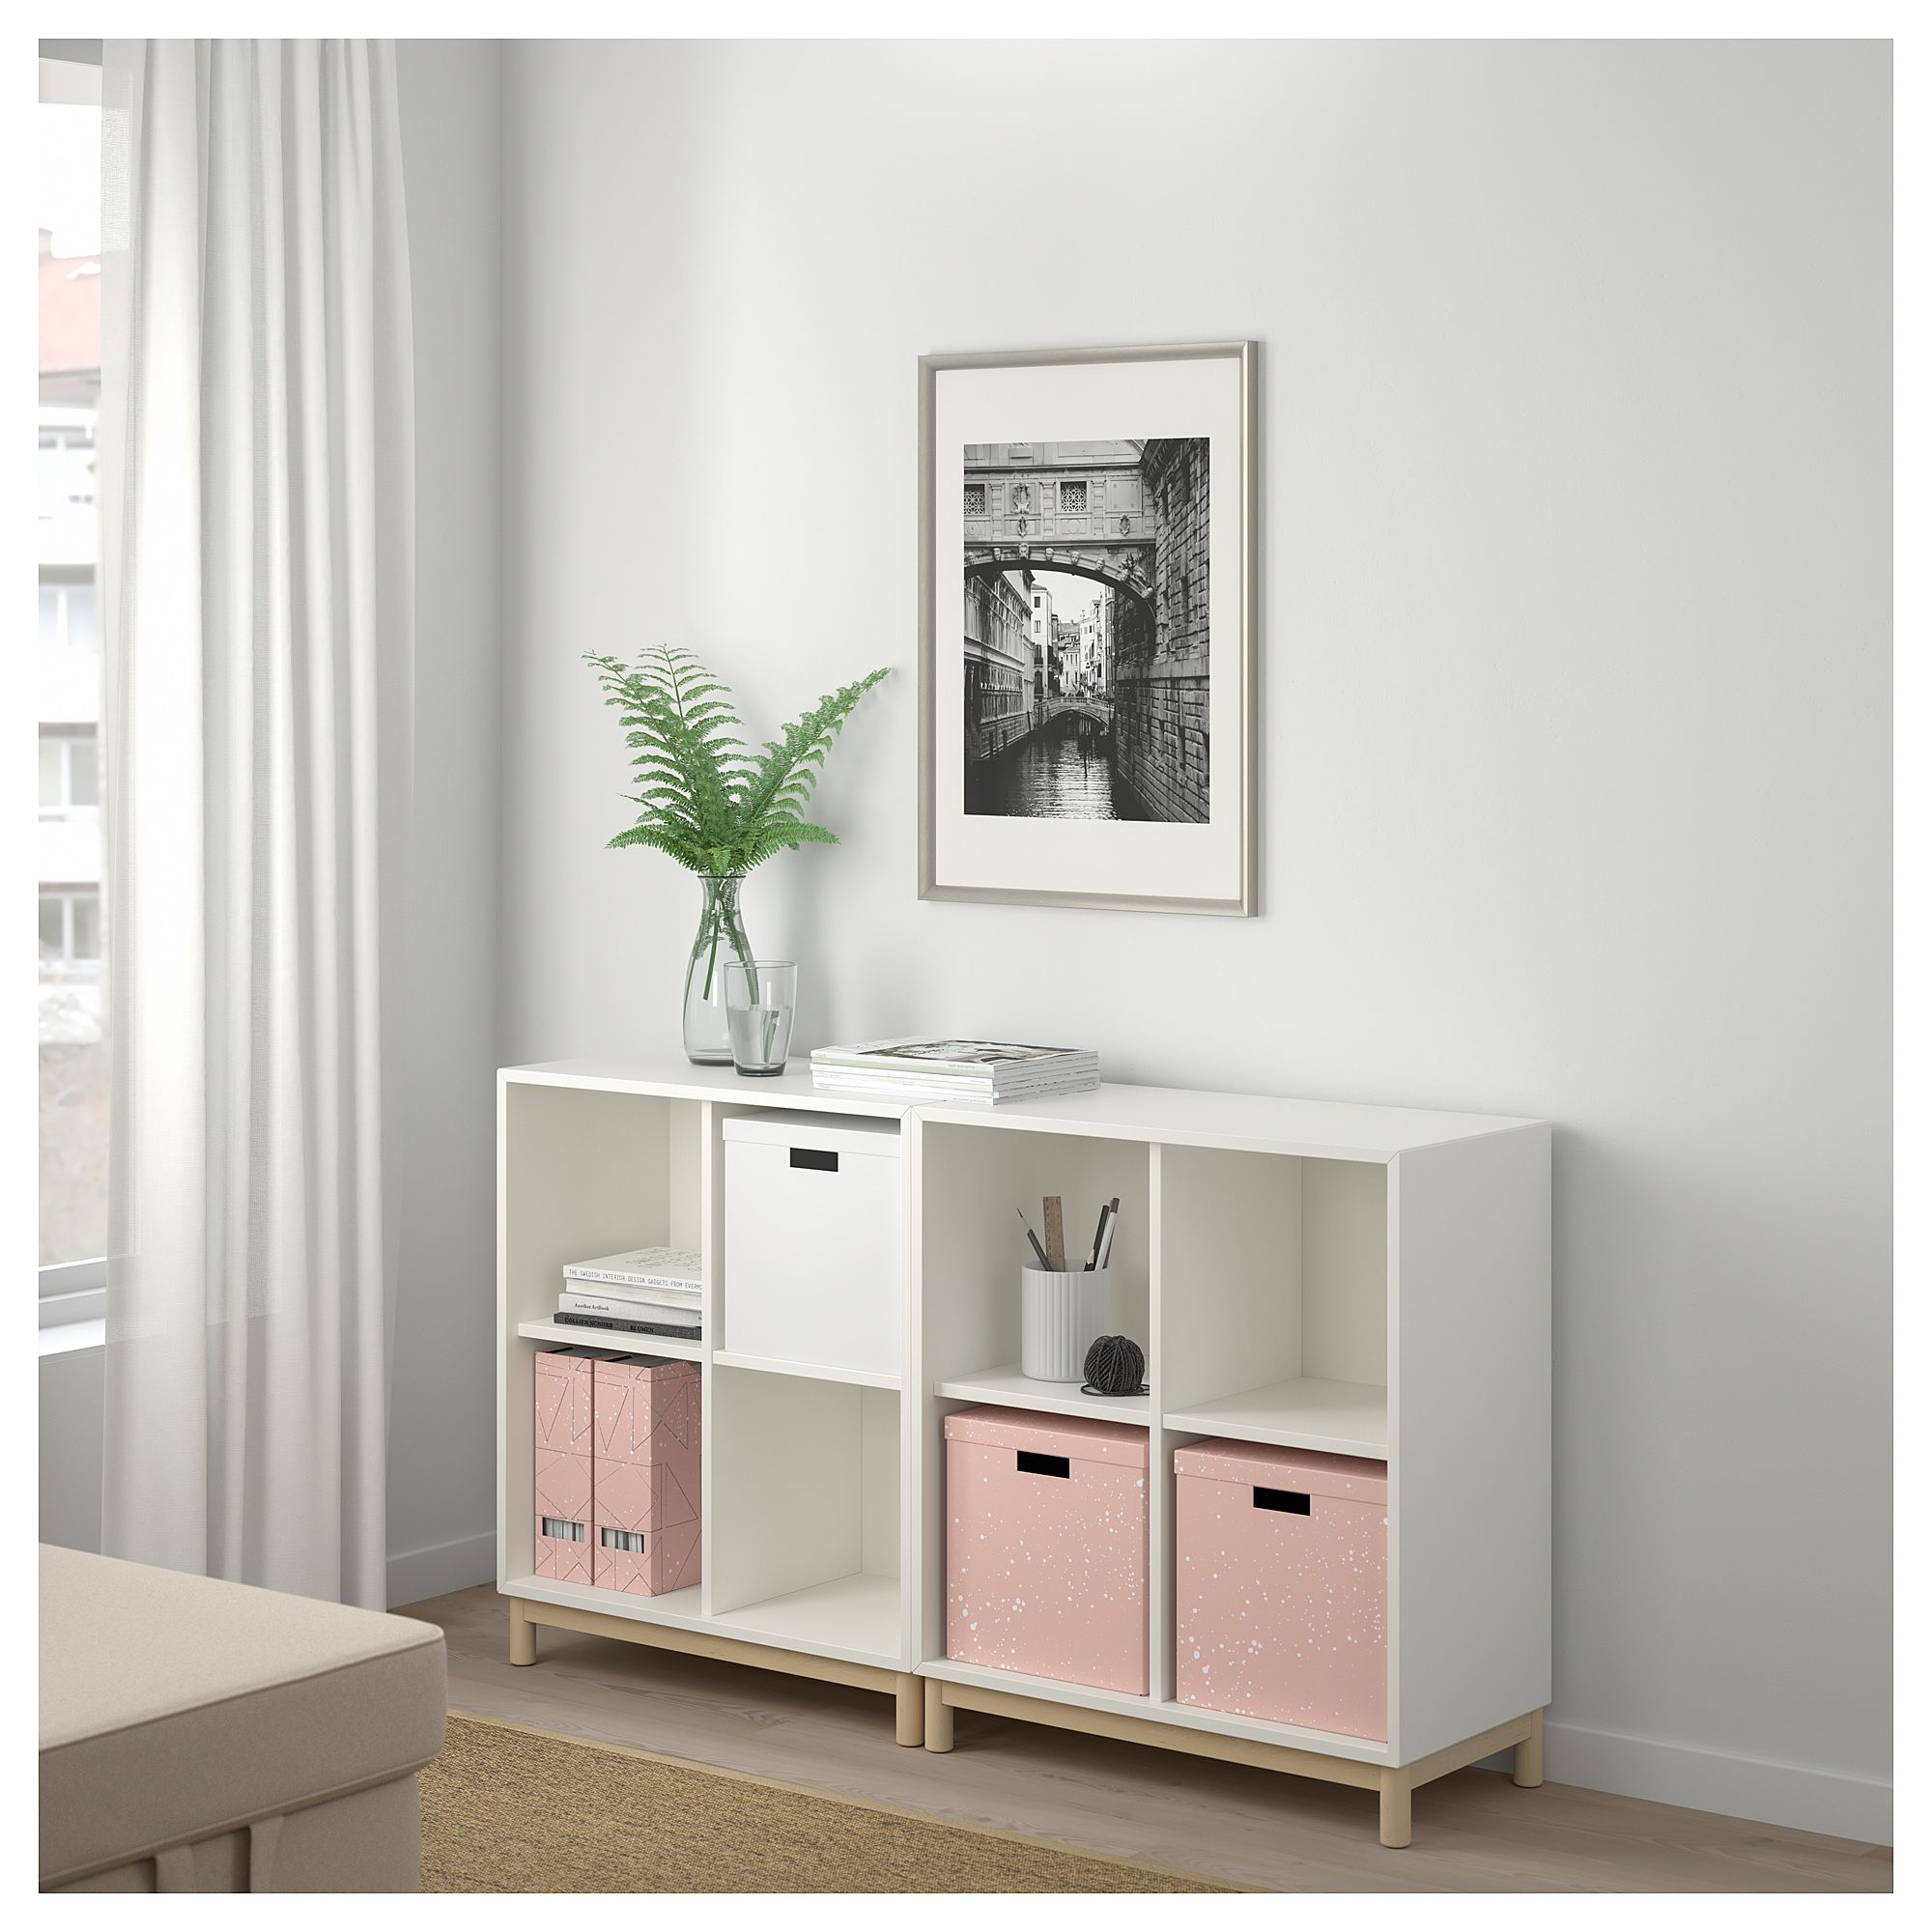 Best Ikea Tjena Storage Box With Lid Pink In 2019 Products 400 x 300